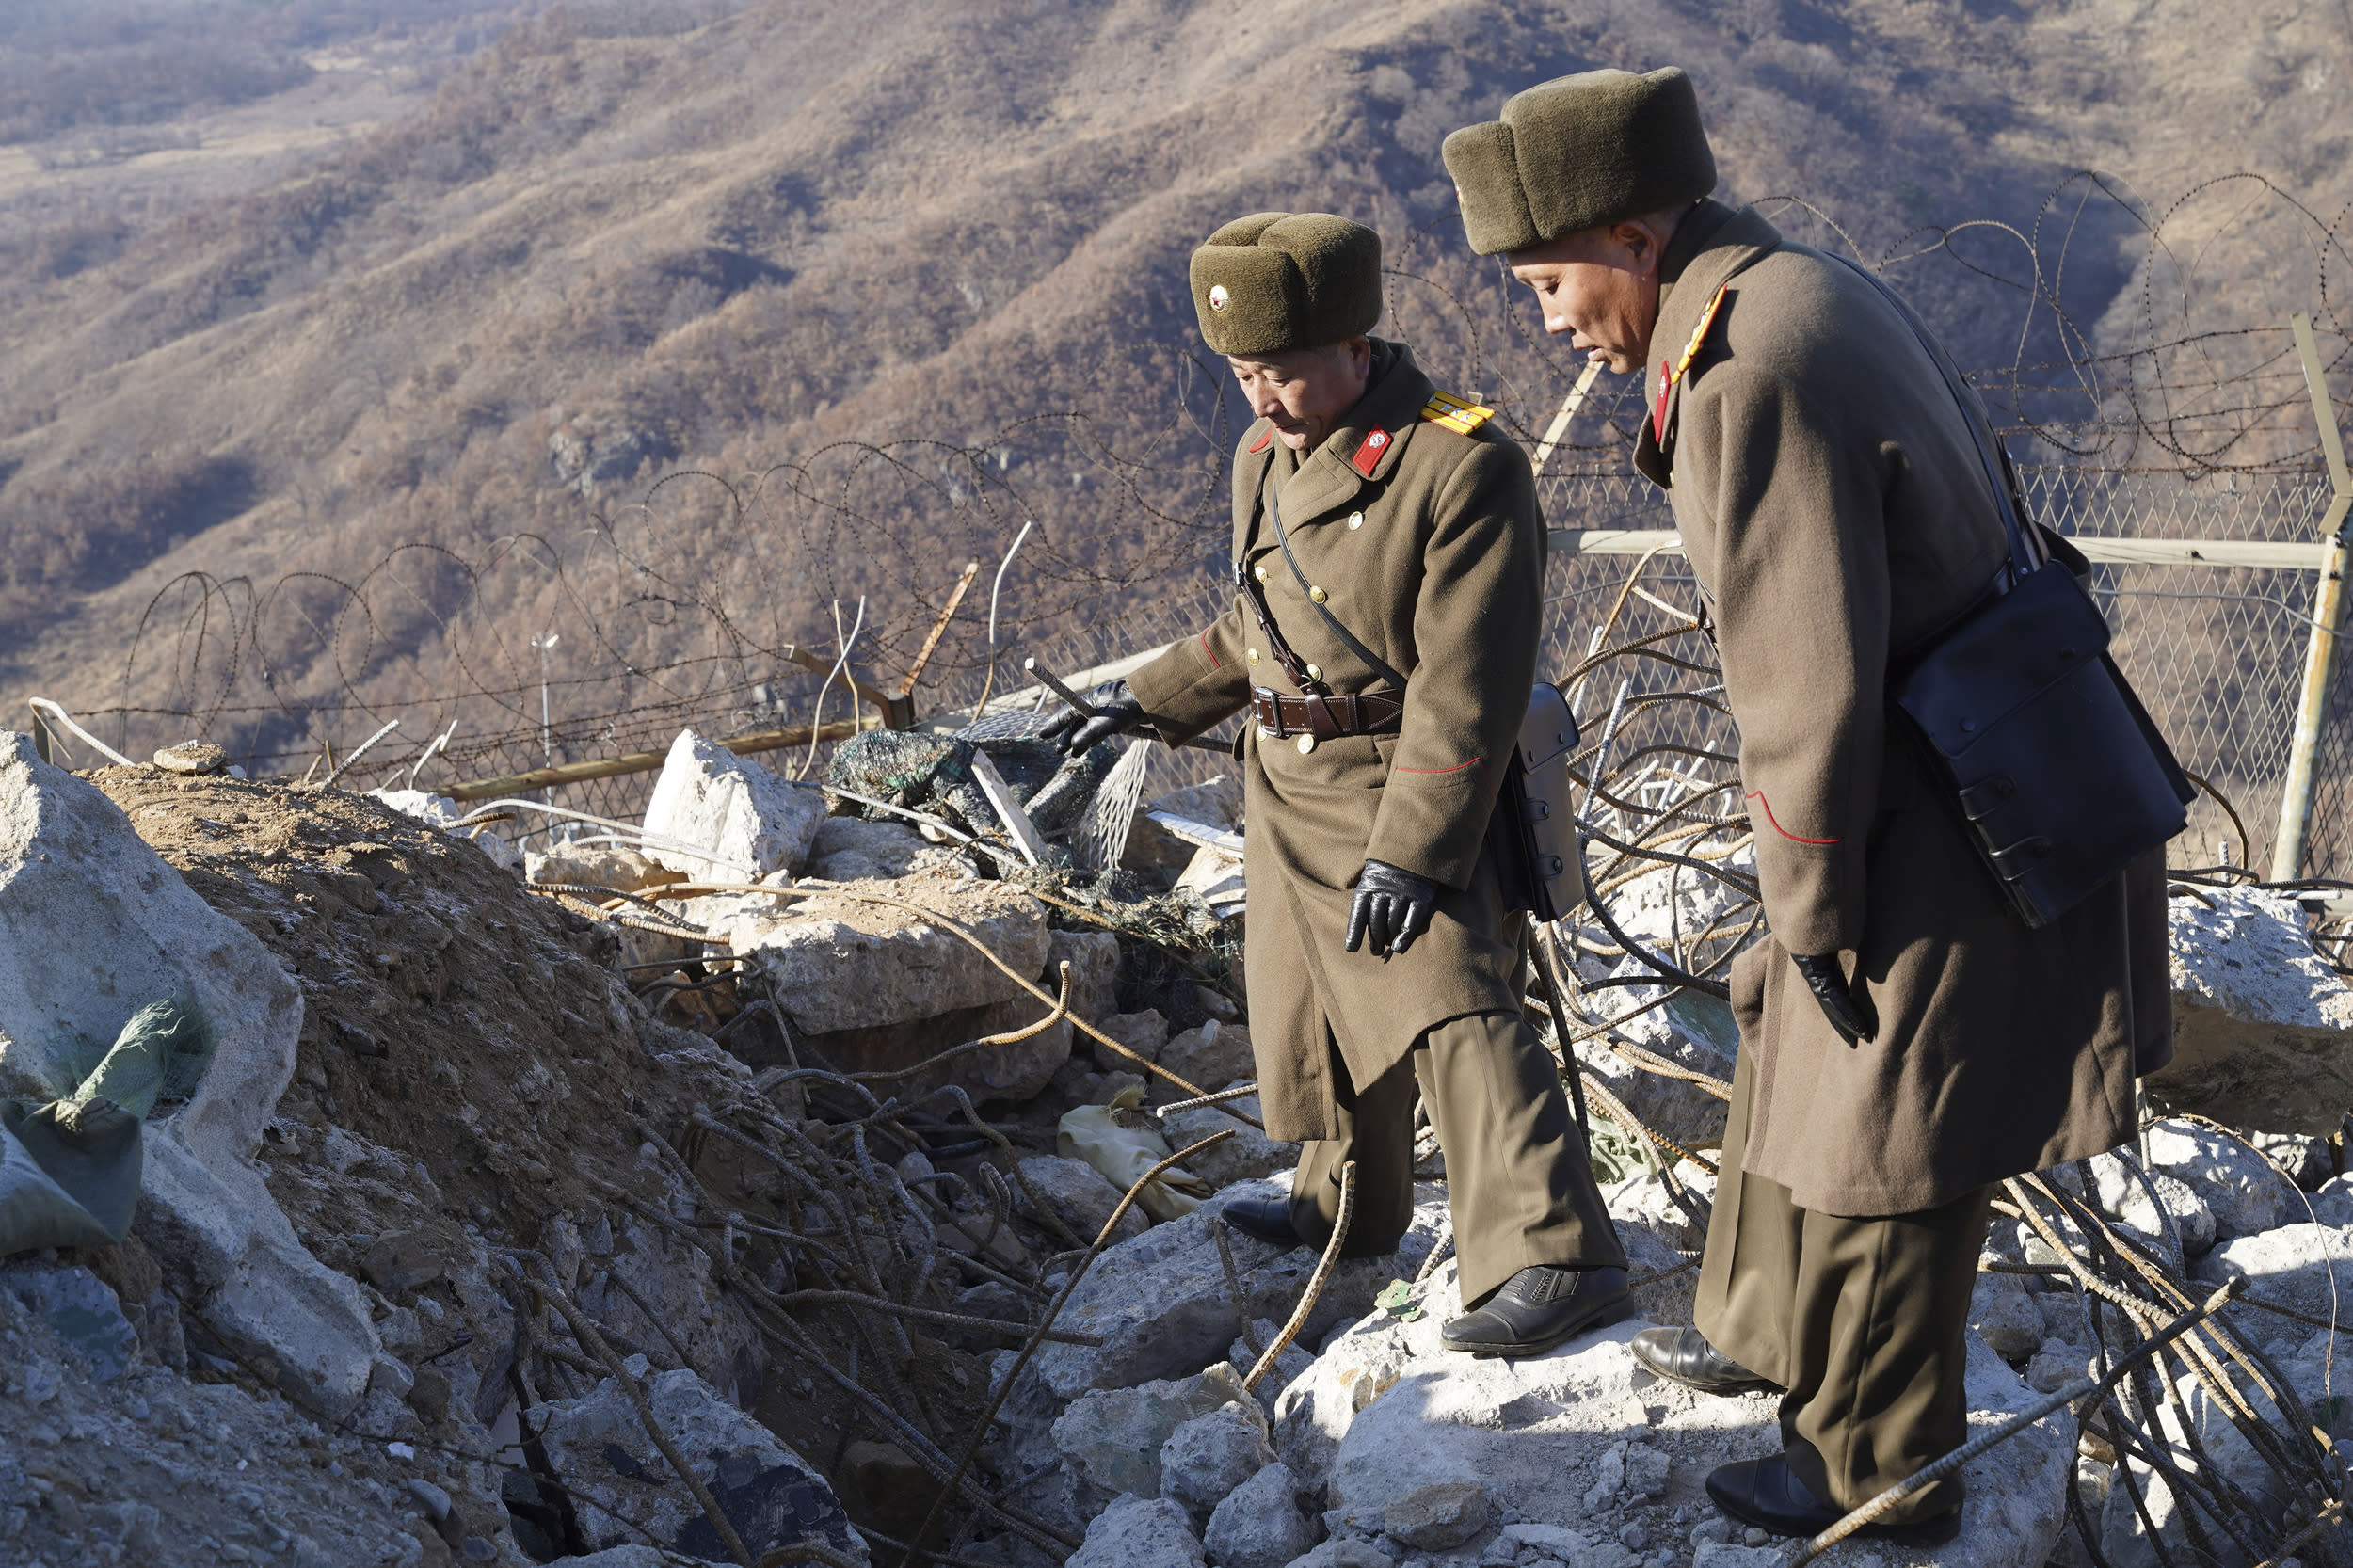 Dec 17, 2018-Cheorwon, South Korea-In this photo provided by South Korea Defense Ministry, a South Korean and North Korean army soldier takes a inspect at the dismantled North Korean guard post inside the Demilitarized Zone (DMZ) in the central section of the inter-Korean border in Cheorwon, North Korea. South Korea's military on Monday confirmed the demolition and disablement of some North Korean border guard posts (GPs) through its onsite verification last week and days of subsequent analysis. The Joint Chiefs of Staff (JCS) announced the results of its Dec. 12 work to verify the demolition of 10 North Korean GPs in the Demilitarized Zone (DMZ) and the disarmament of another. The North's military also carried out the verification work on the same day. As part of a boarder accord to reduce military tensions and build trust, Seoul and Pyongyang initially agreed to demolish 11 GPs each. But they decided later to keep one of them apiece, albeit unarmed, in light of their historical value.  (Photo by Seung-il Ryu/NurPhoto via Getty Images)